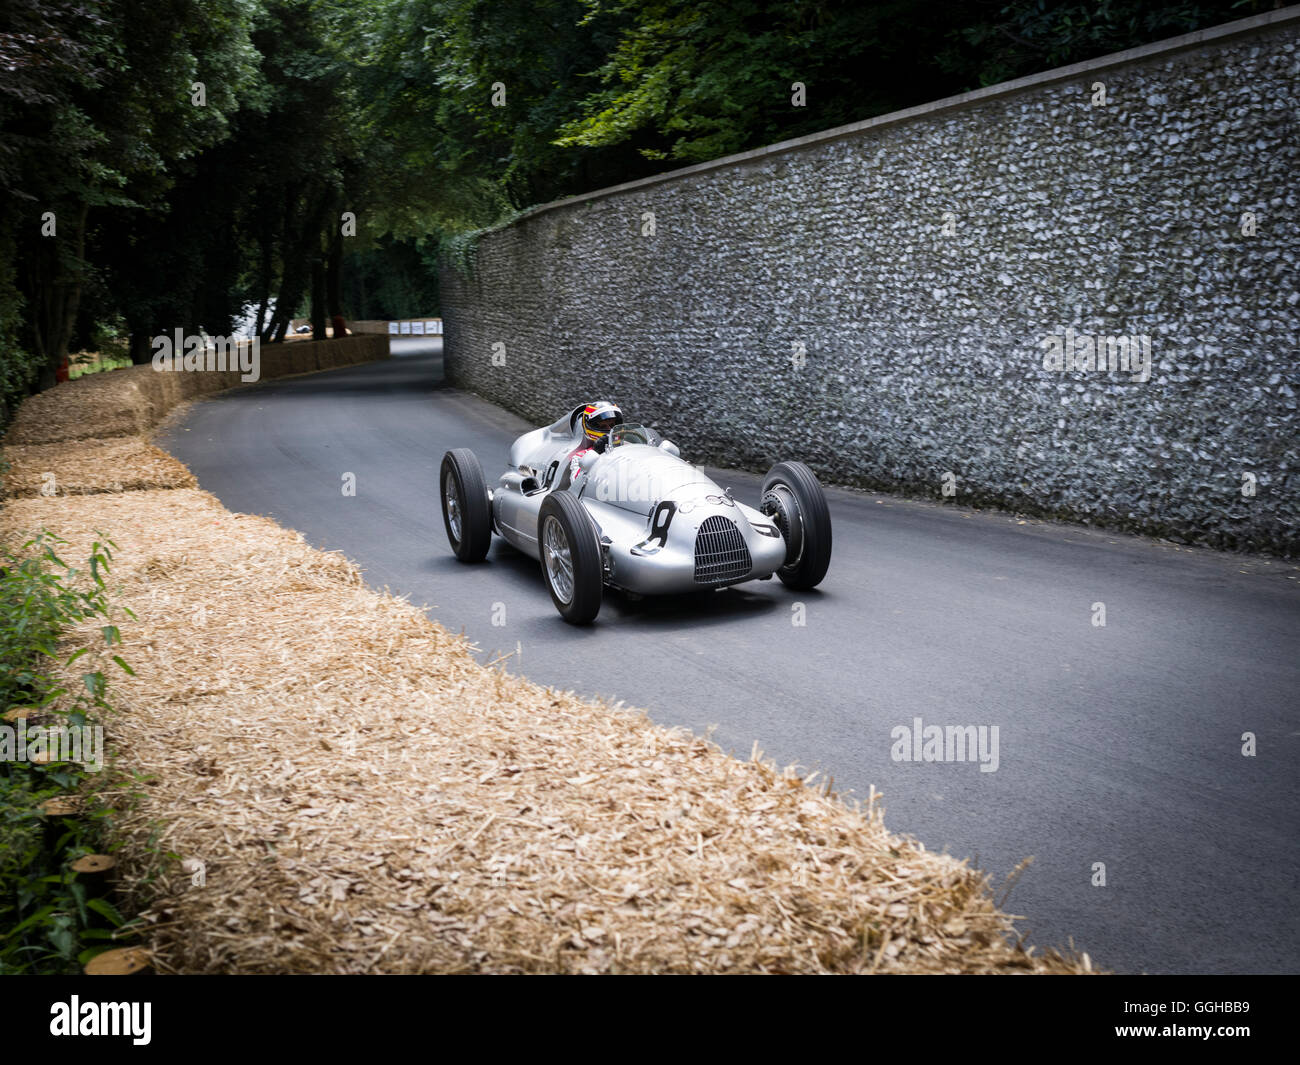 1939 Car Union Typ D, Goodwood Festival of Speed 2014, racing, car racing, classic car, Chichester, Sussex, United - Stock Image